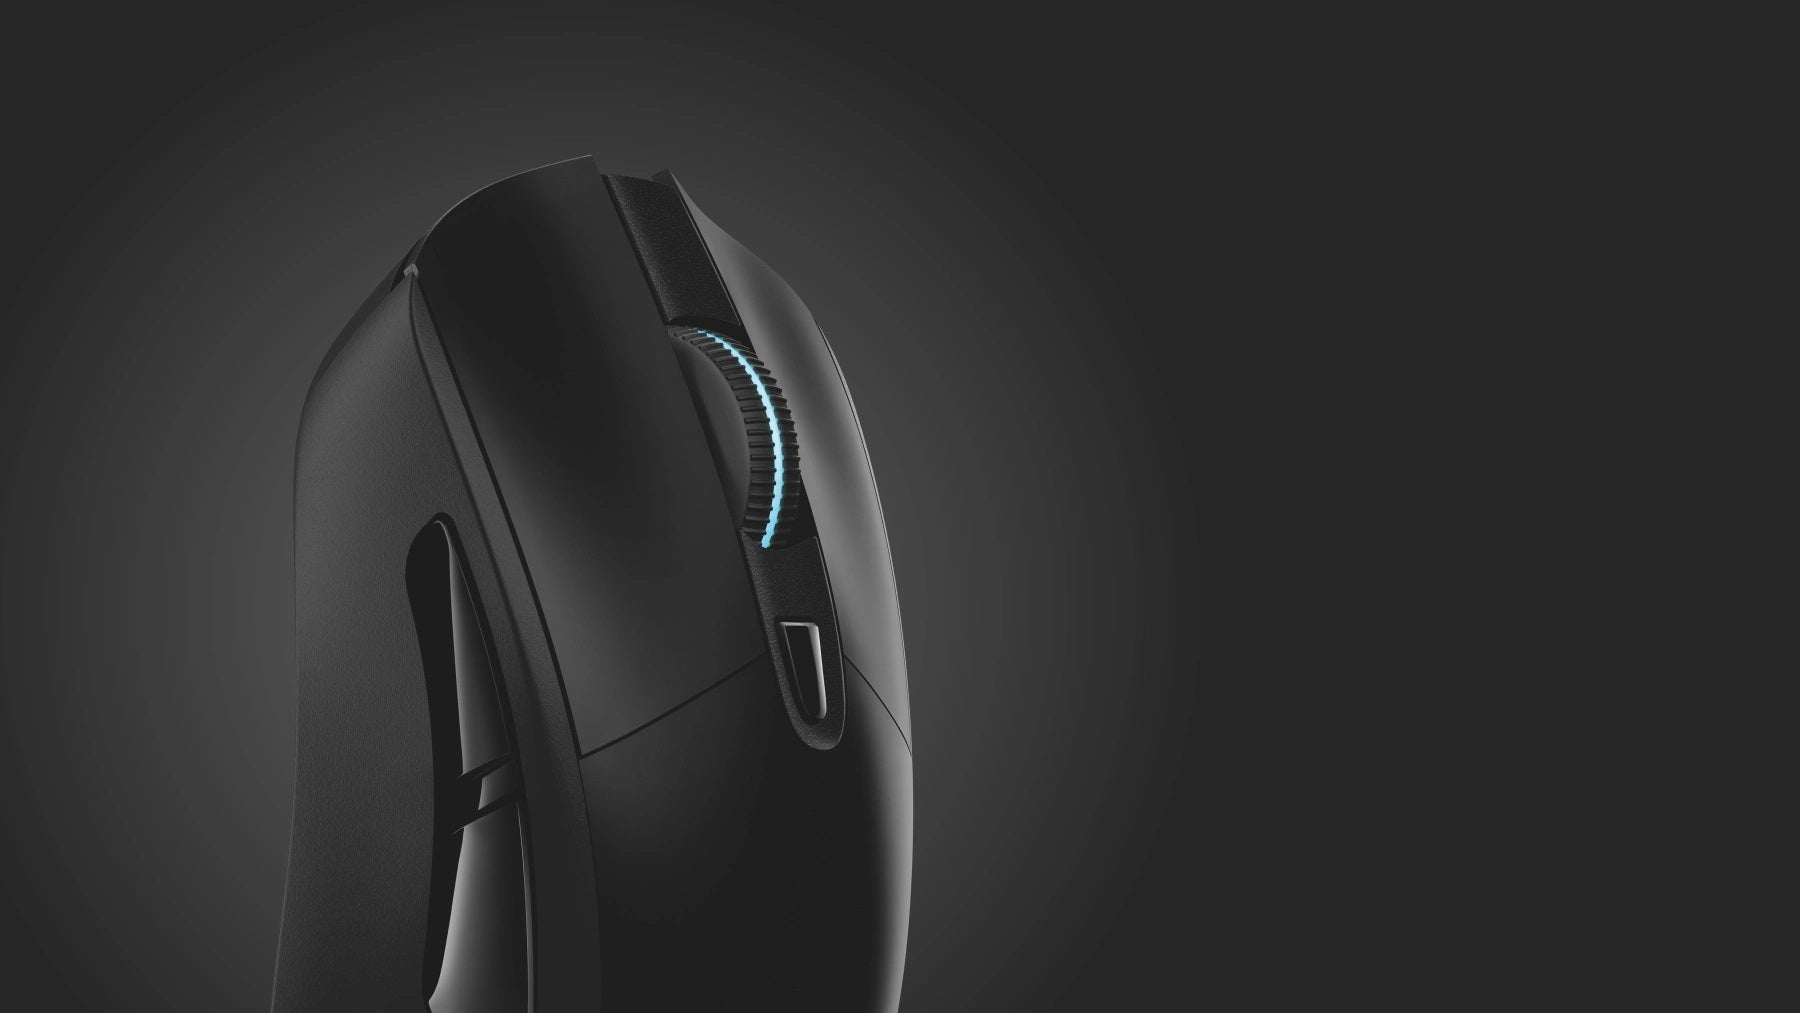 CUSTOMIZABLE PERFORMANCE - Programmable and vibrant LIGHTSYNC RGB technology, 6 programmable buttons, removable weight, onboard memory and more. G703 adapts to your style with Logitech G HUB.